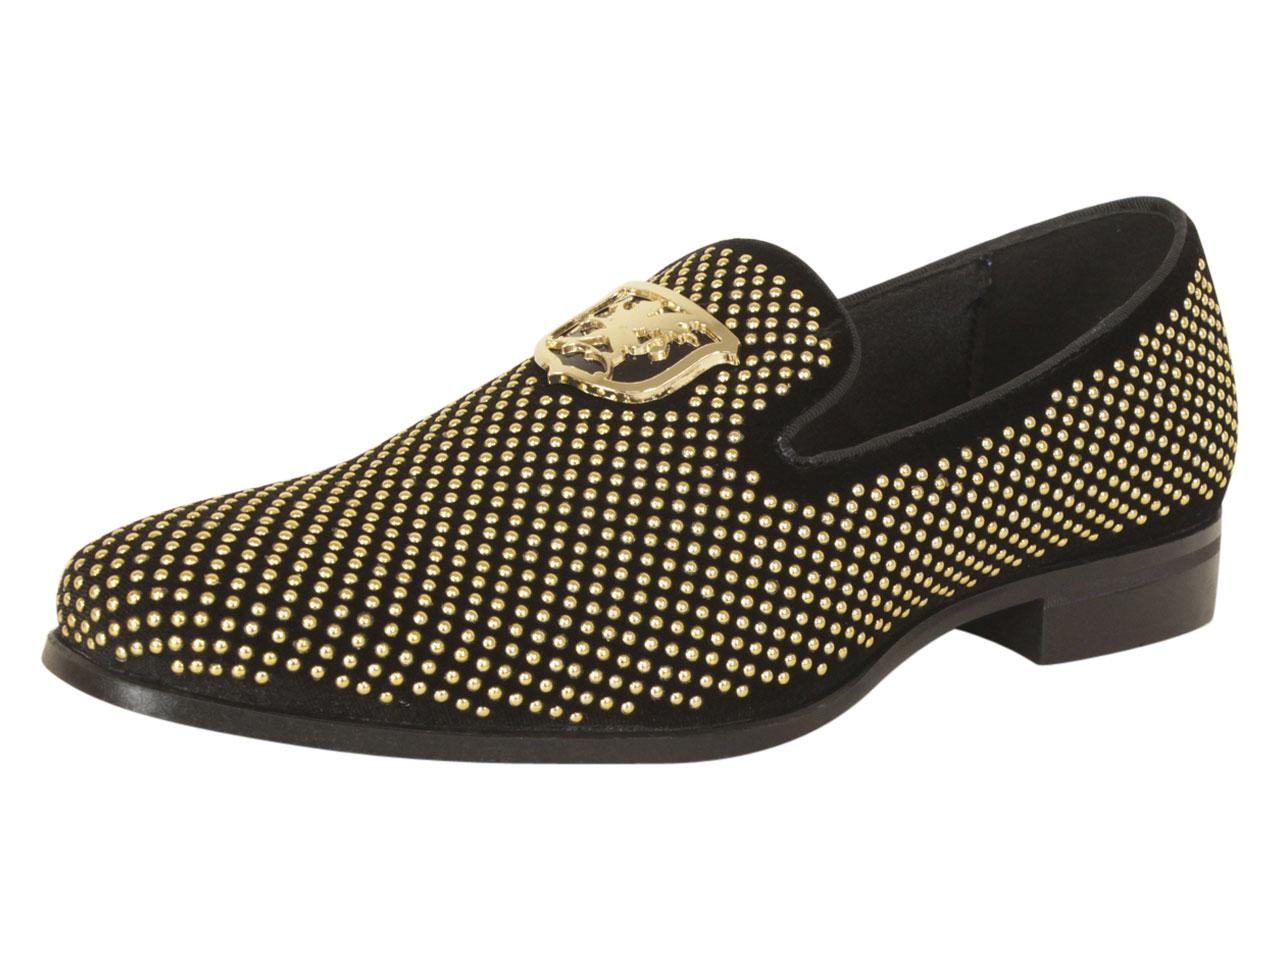 Image of - Black/Gold - 9 D(M) US